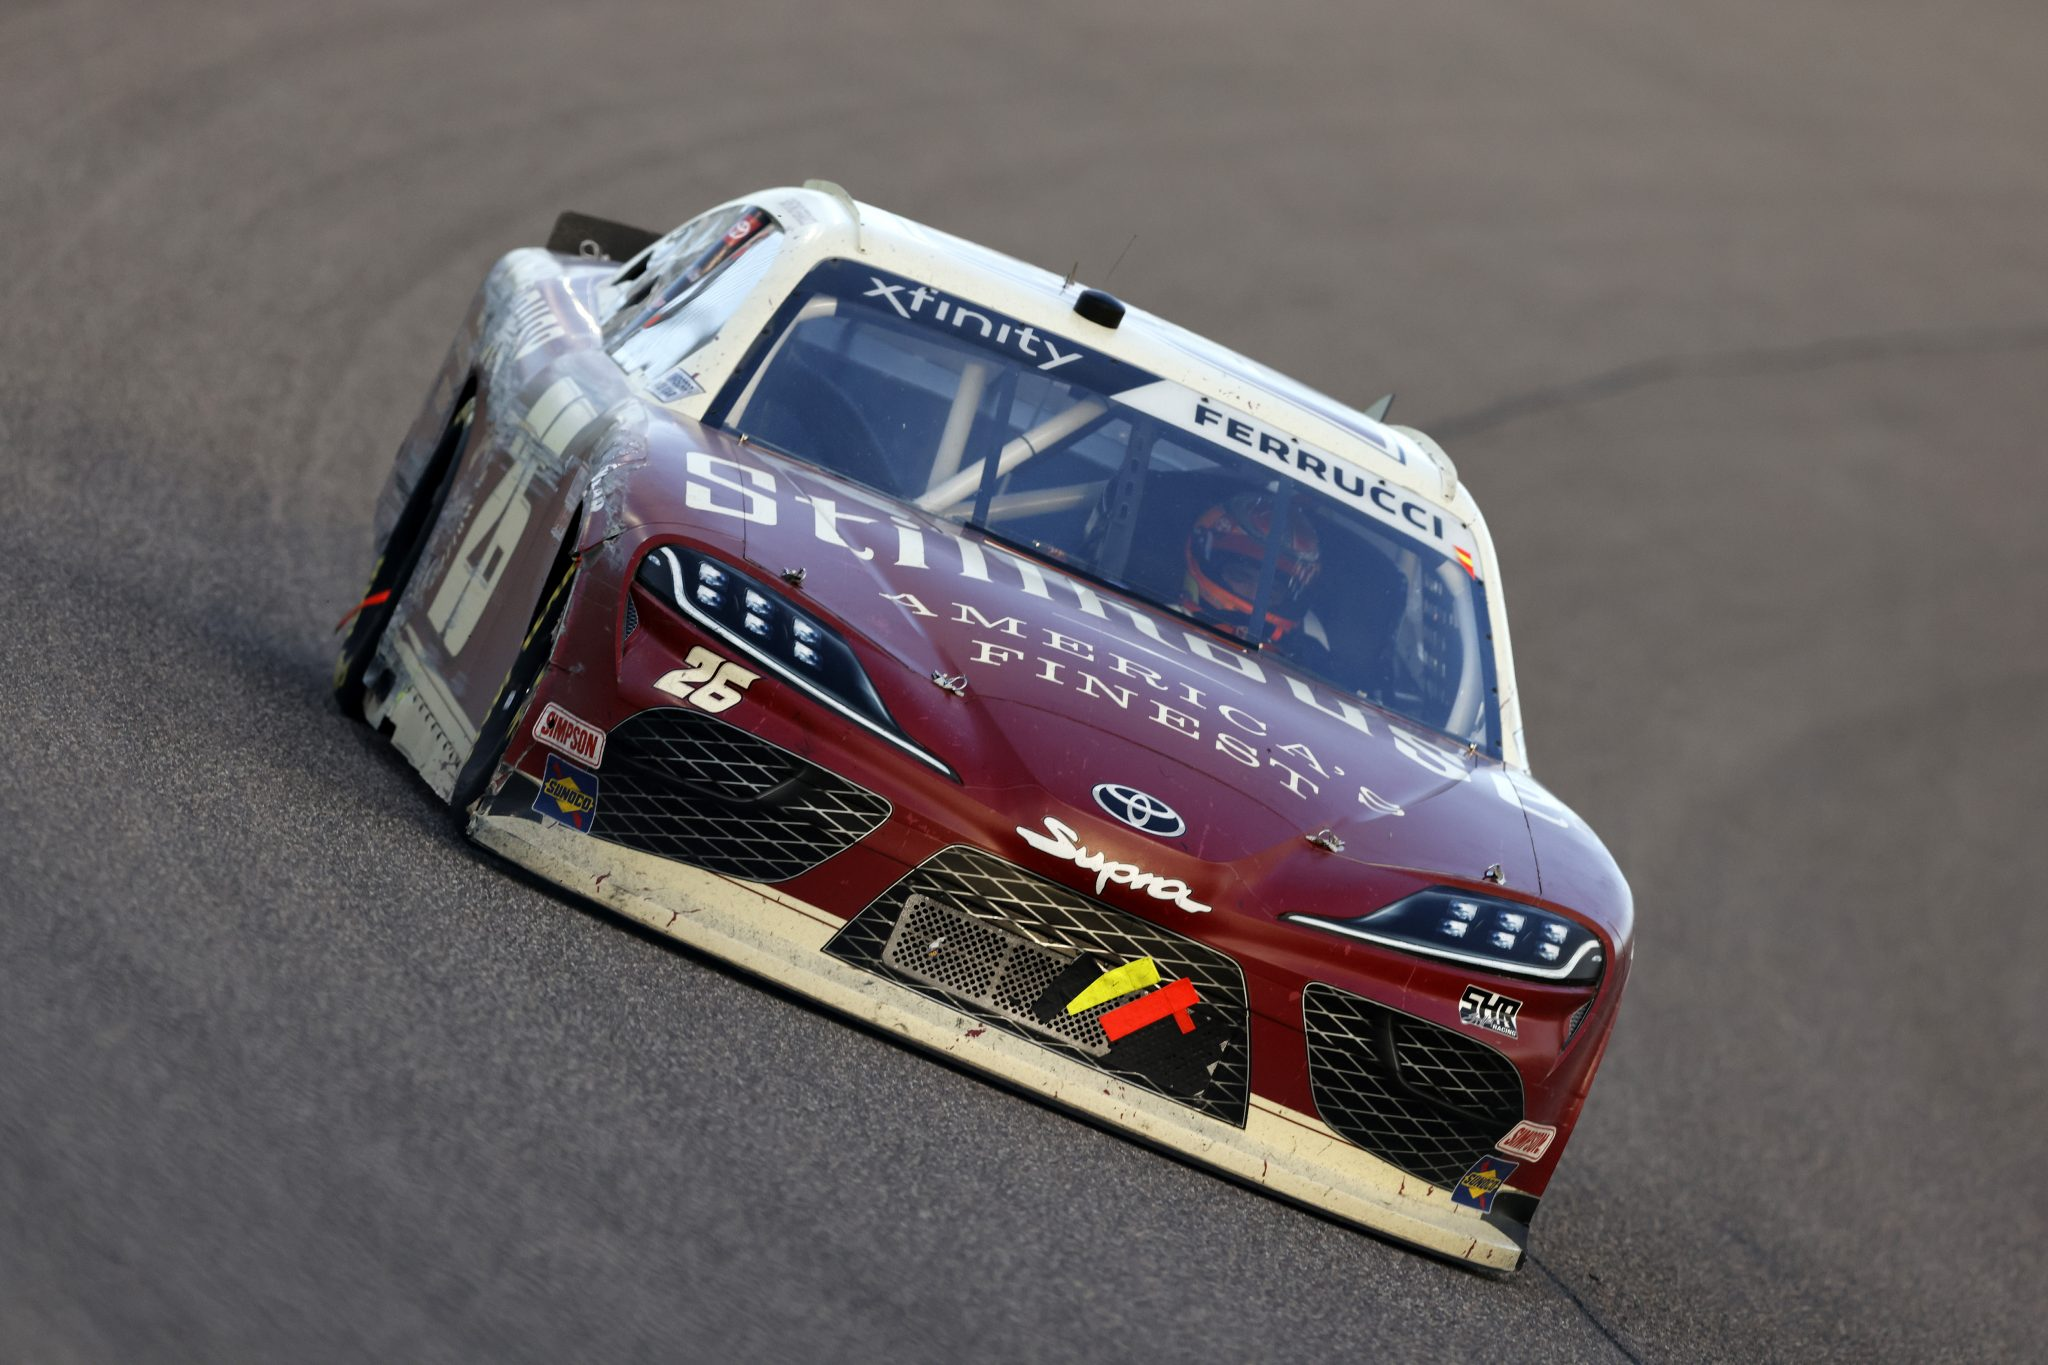 HOMESTEAD, FLORIDA - FEBRUARY 27: Santino Ferrucci, driver of the #26 Stillhouse Whiskey Toyota, drives during the NASCAR Xfinity Series Contender Boats 250 at Homestead-Miami Speedway on February 27, 2021 in Homestead, Florida. (Photo by Michael Reaves/Getty Images) | Getty Images